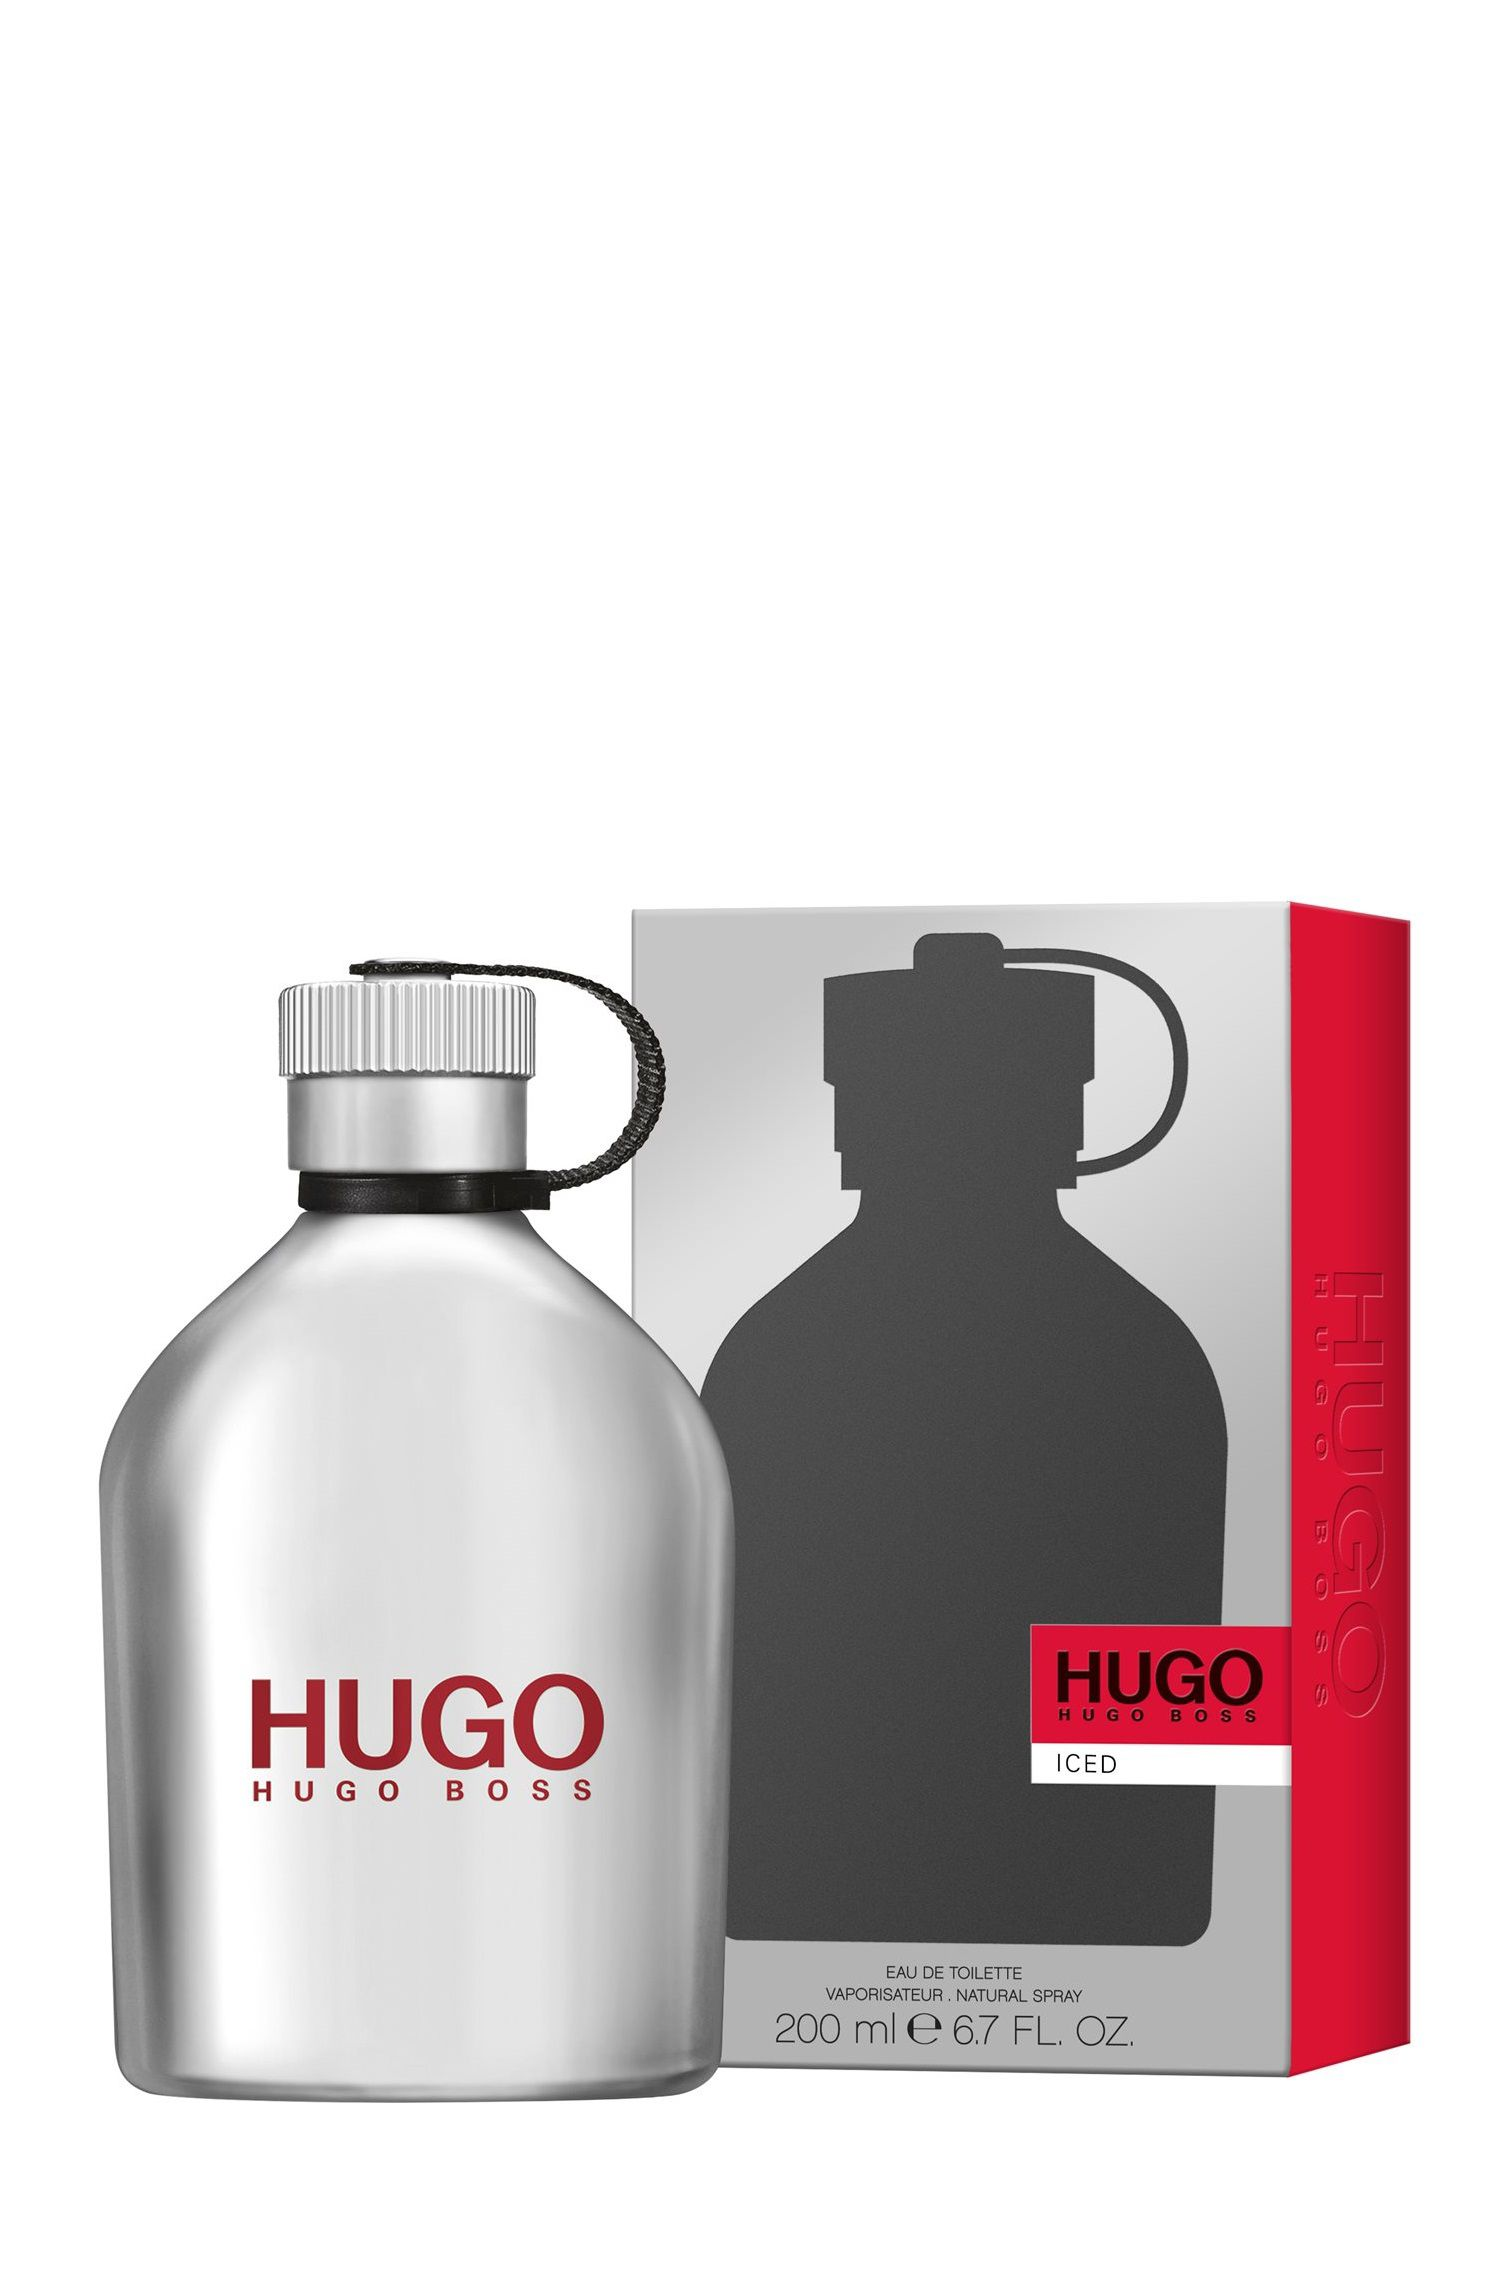 HUGO Iced Eau de Toilette 200 ml, Assorted-Pre-Pack